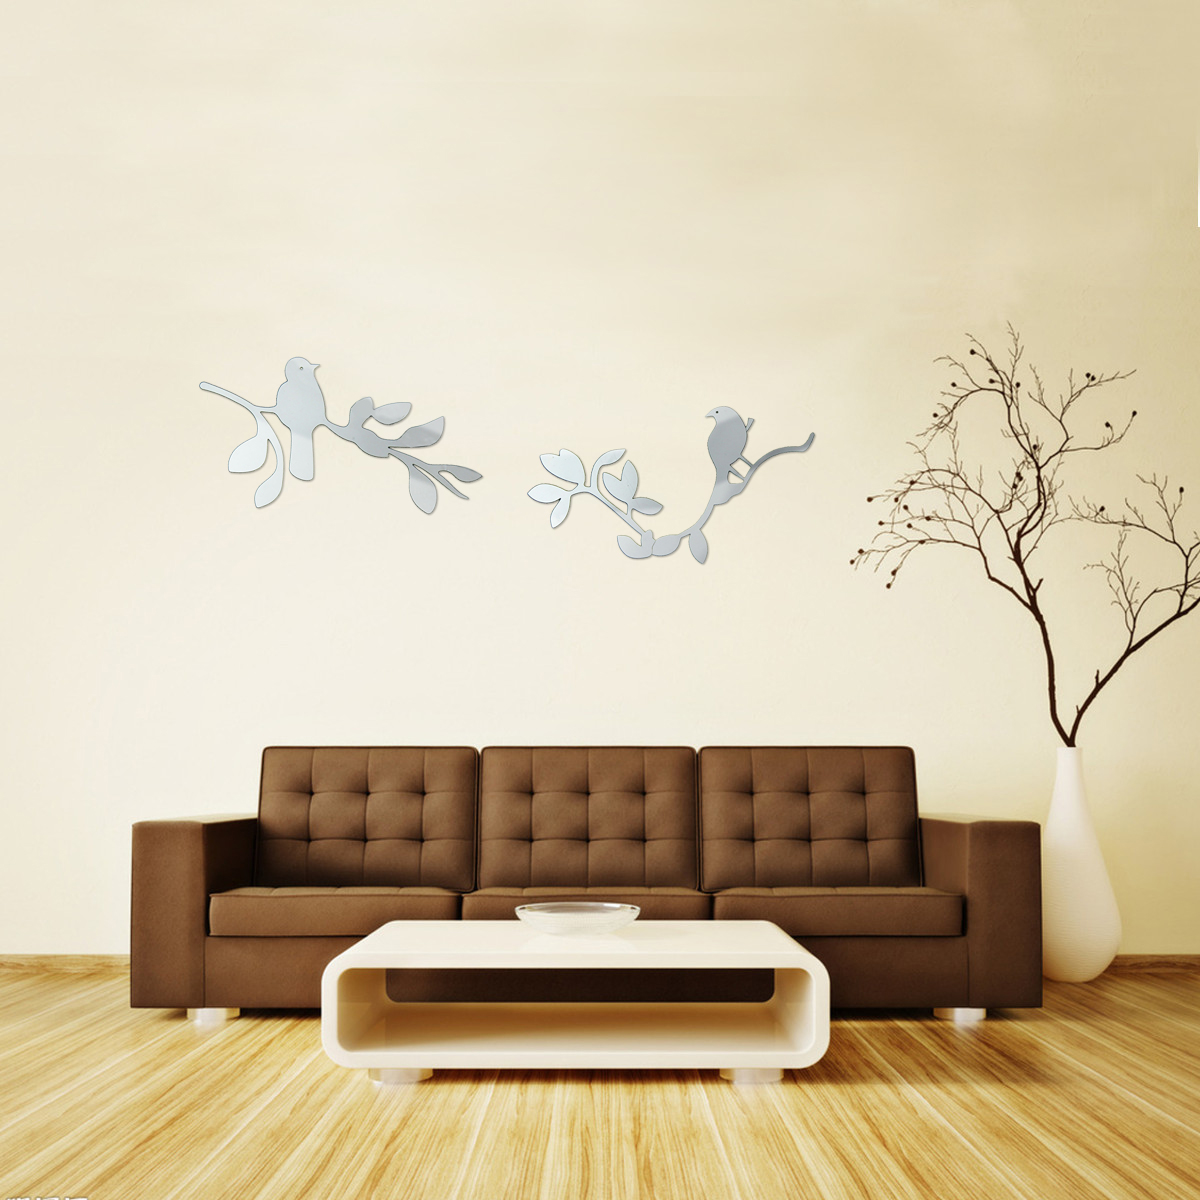 Diy silver modern mirror wall sticker cats square heart for Wall stickers decor modern